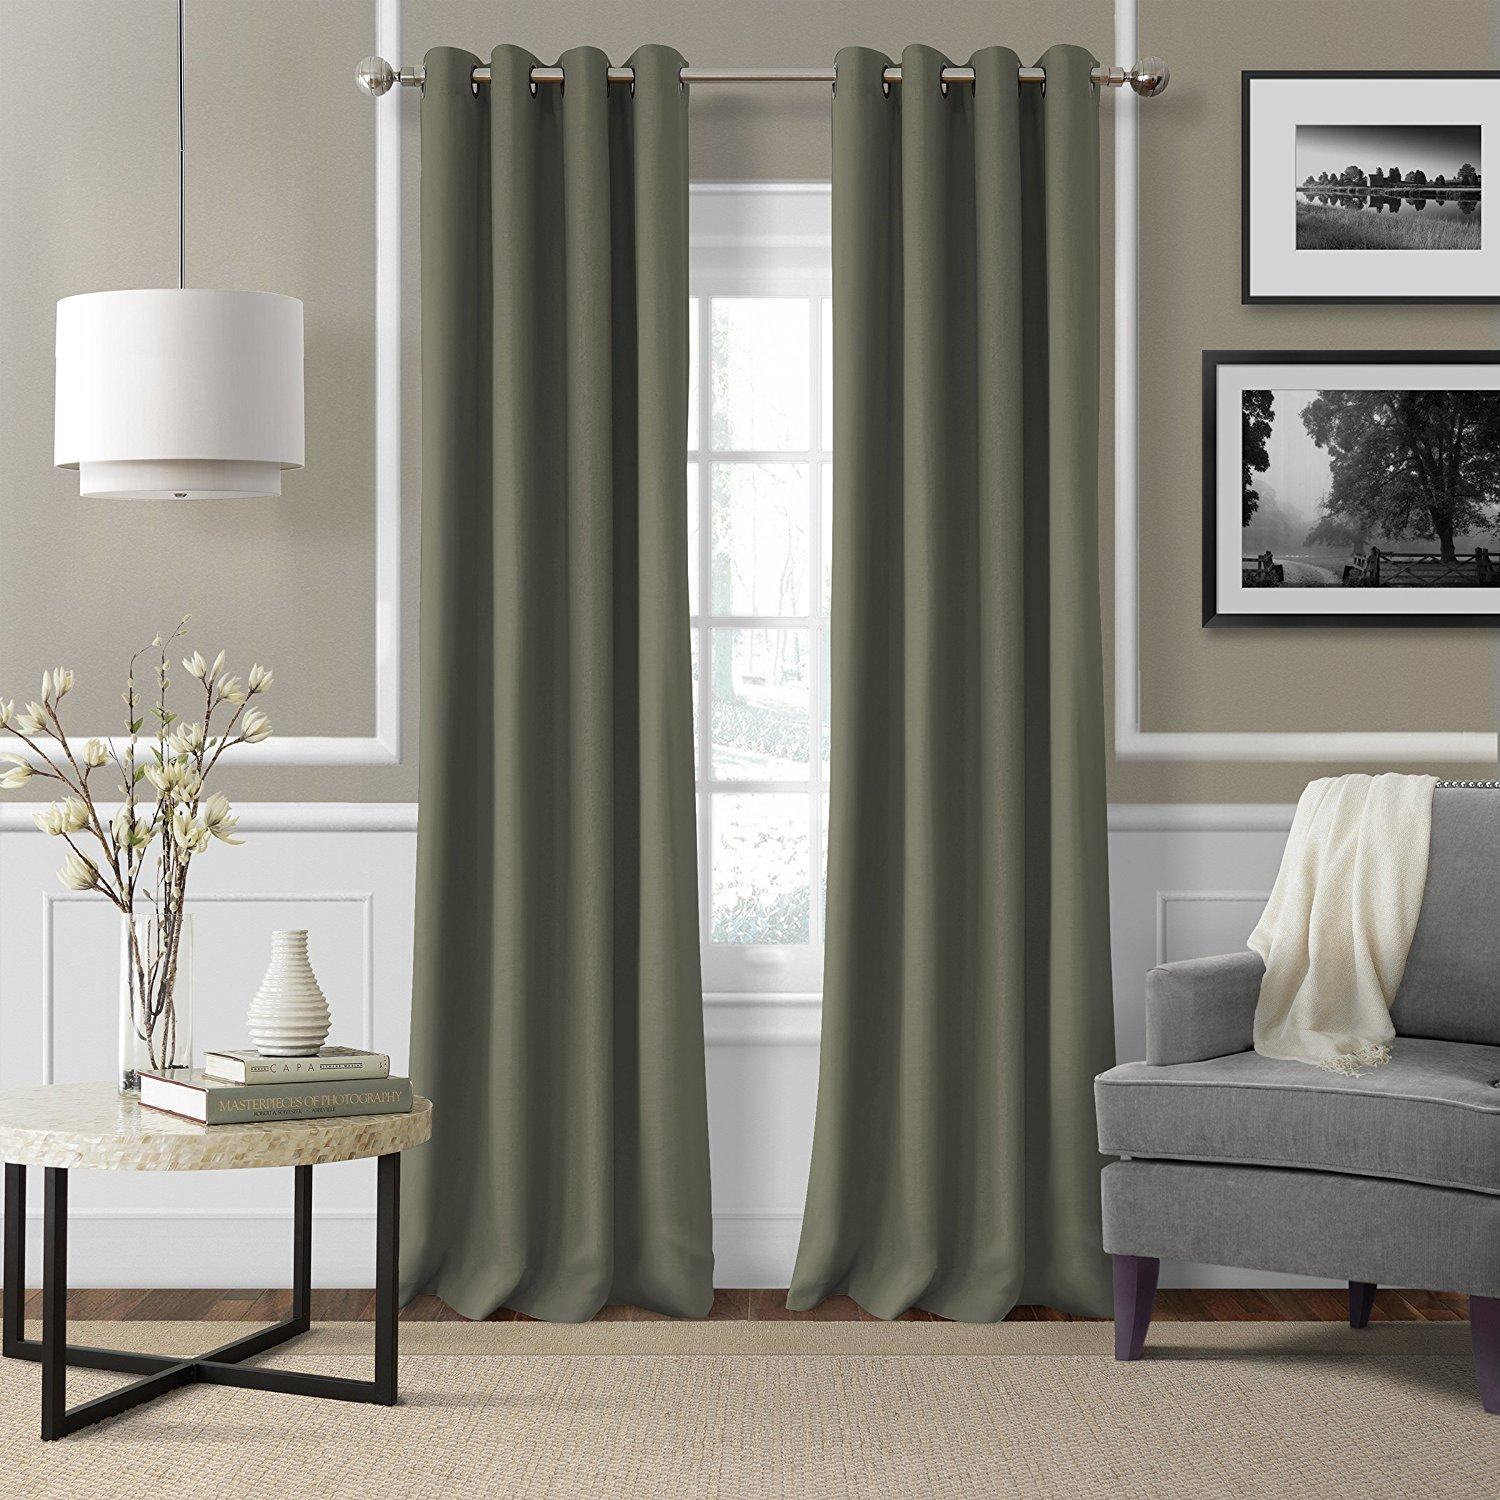 Decor: Enchanting Macys Curtains With Wall Art And Pendant Inside Macys Wall Art (View 5 of 20)